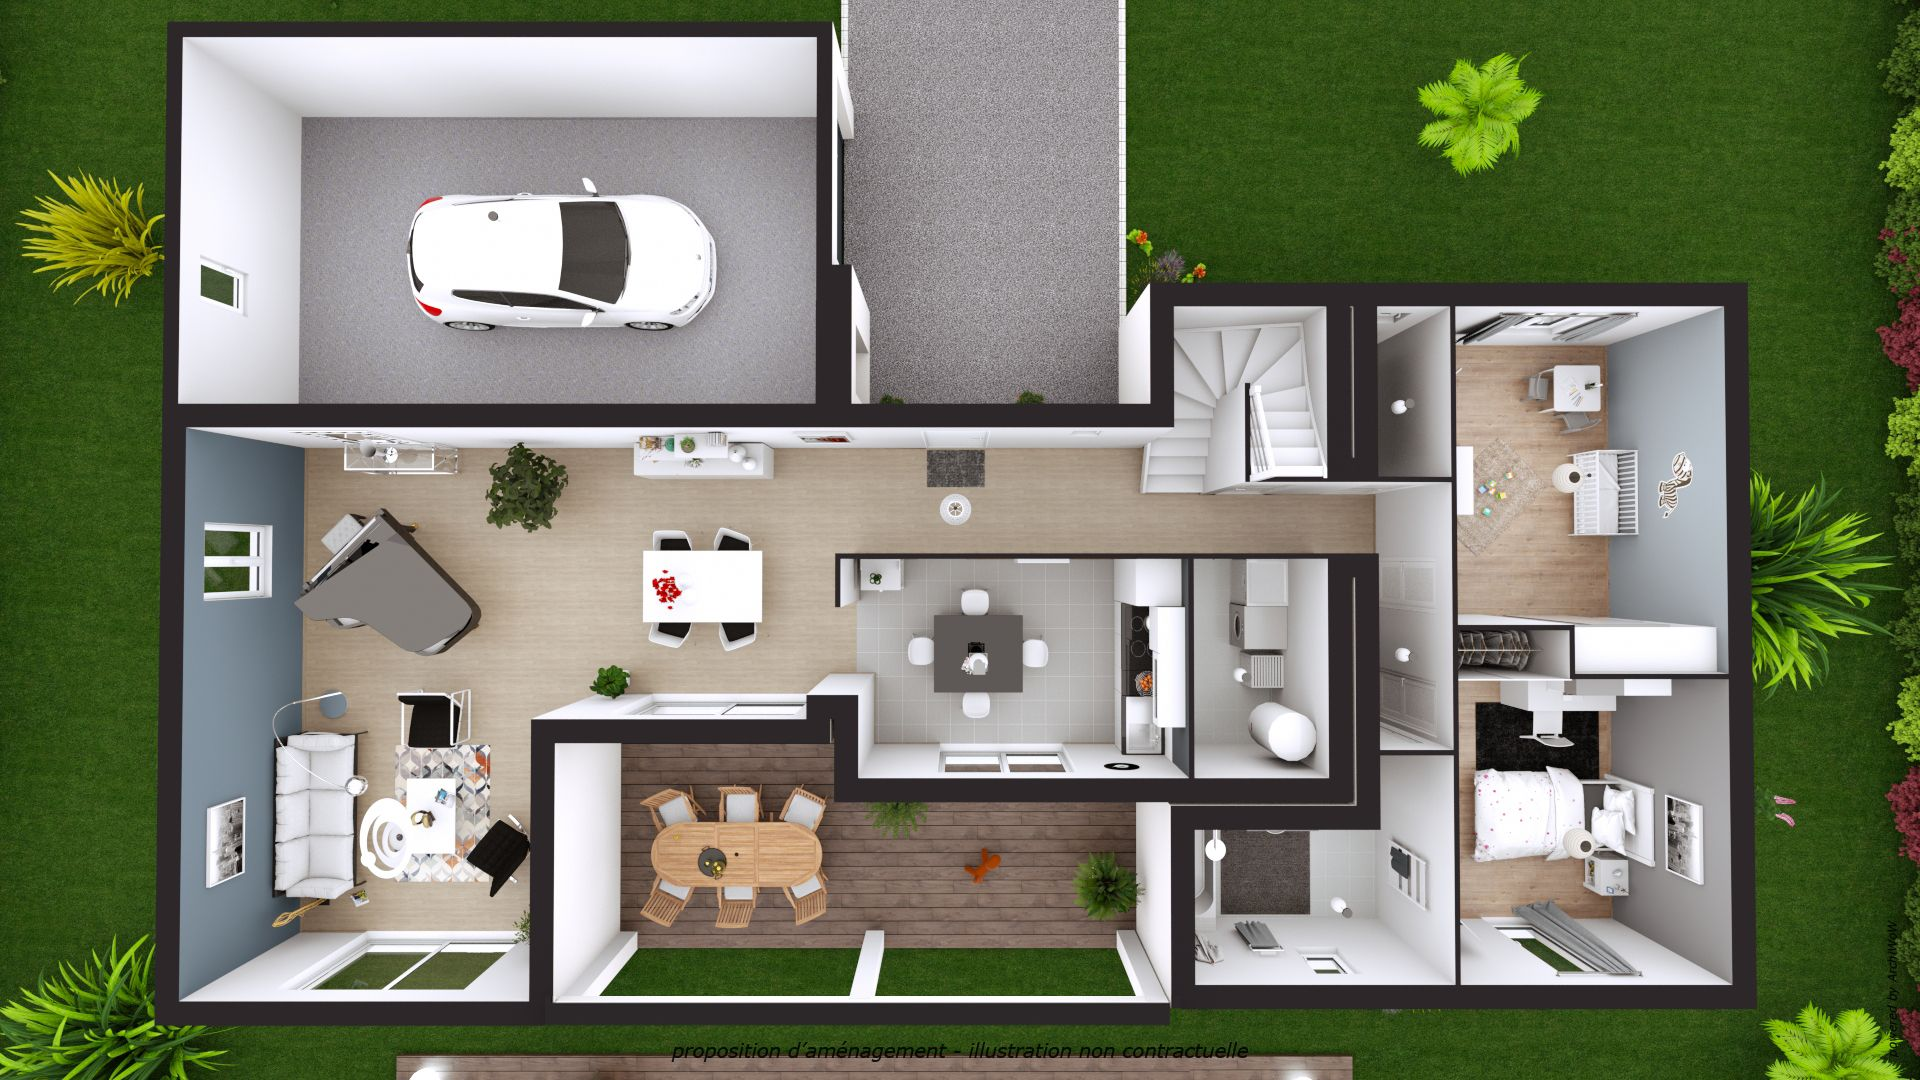 3d Floor Plan Of A Single Family House With Garage Created By Cedreo 3d Architecture Software Floor Plan Creator Architectural Floor Plans Floor Plans